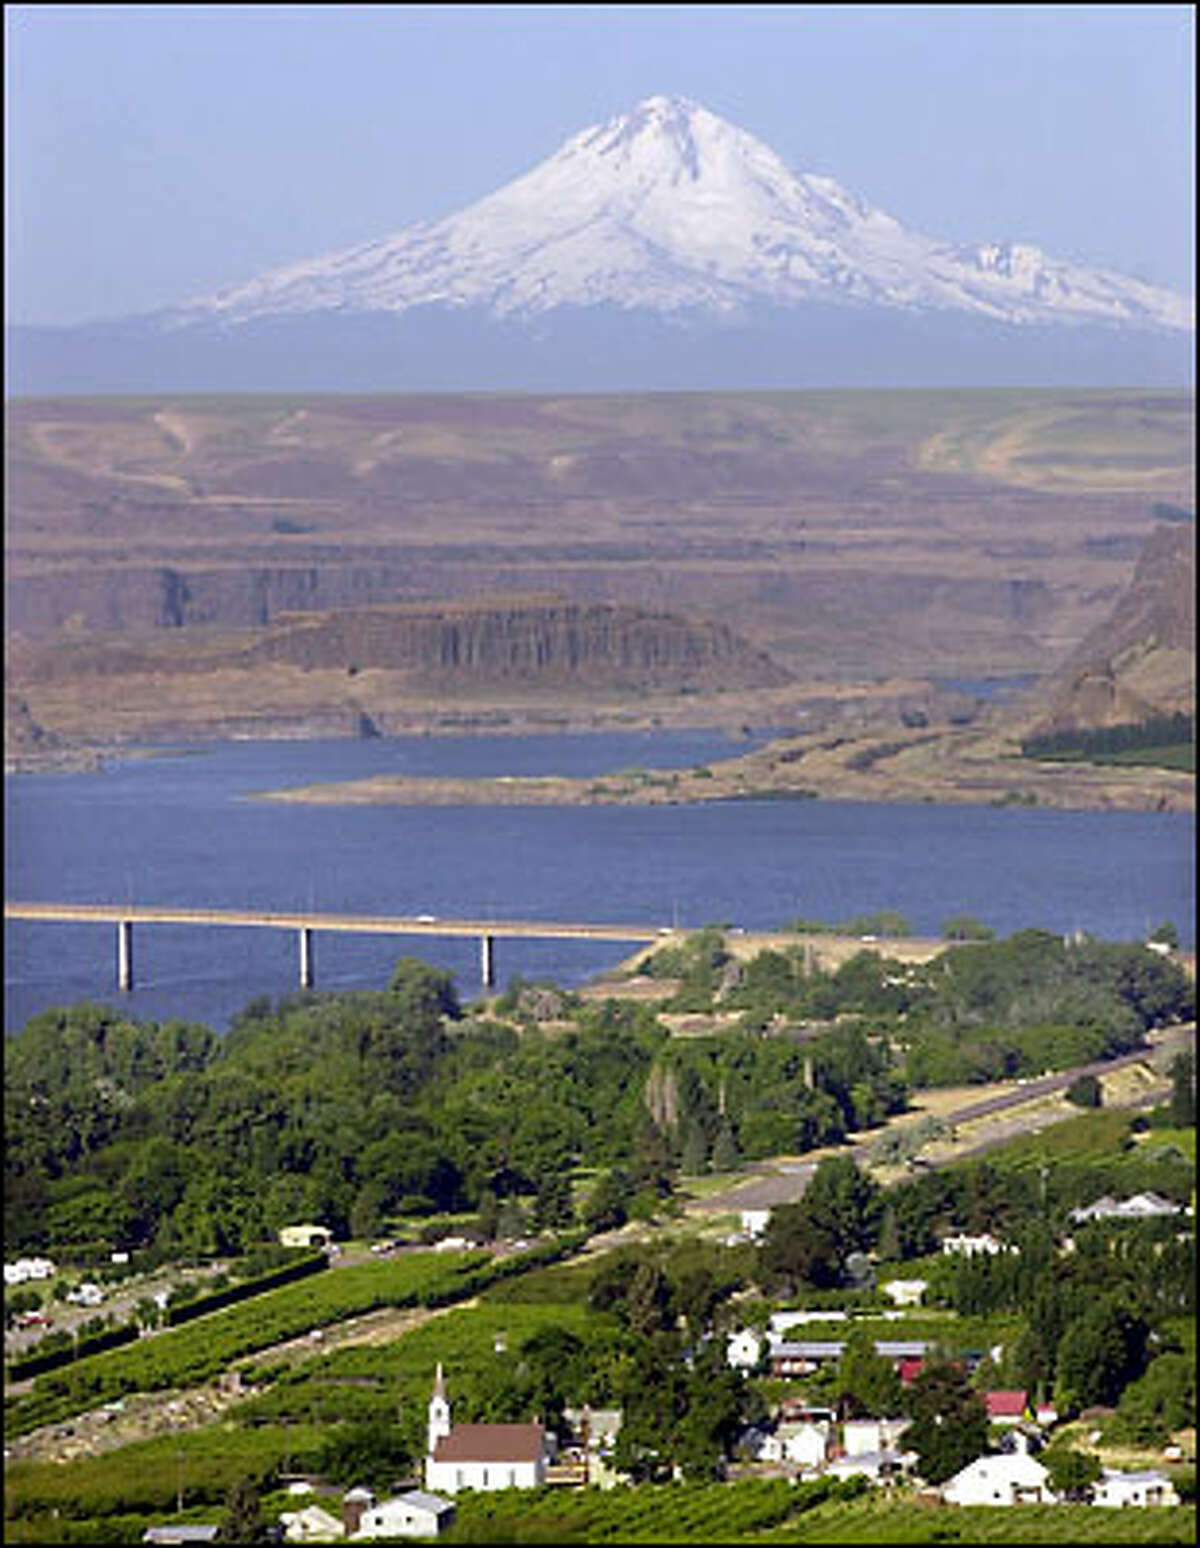 In 1997, Catholic bishops in the Northwest began studying the Columbia River watershed. Yesterday, 12 bishops released their pastoral letter on the Columbia and called for cooperation in sharing the watershed's resources.